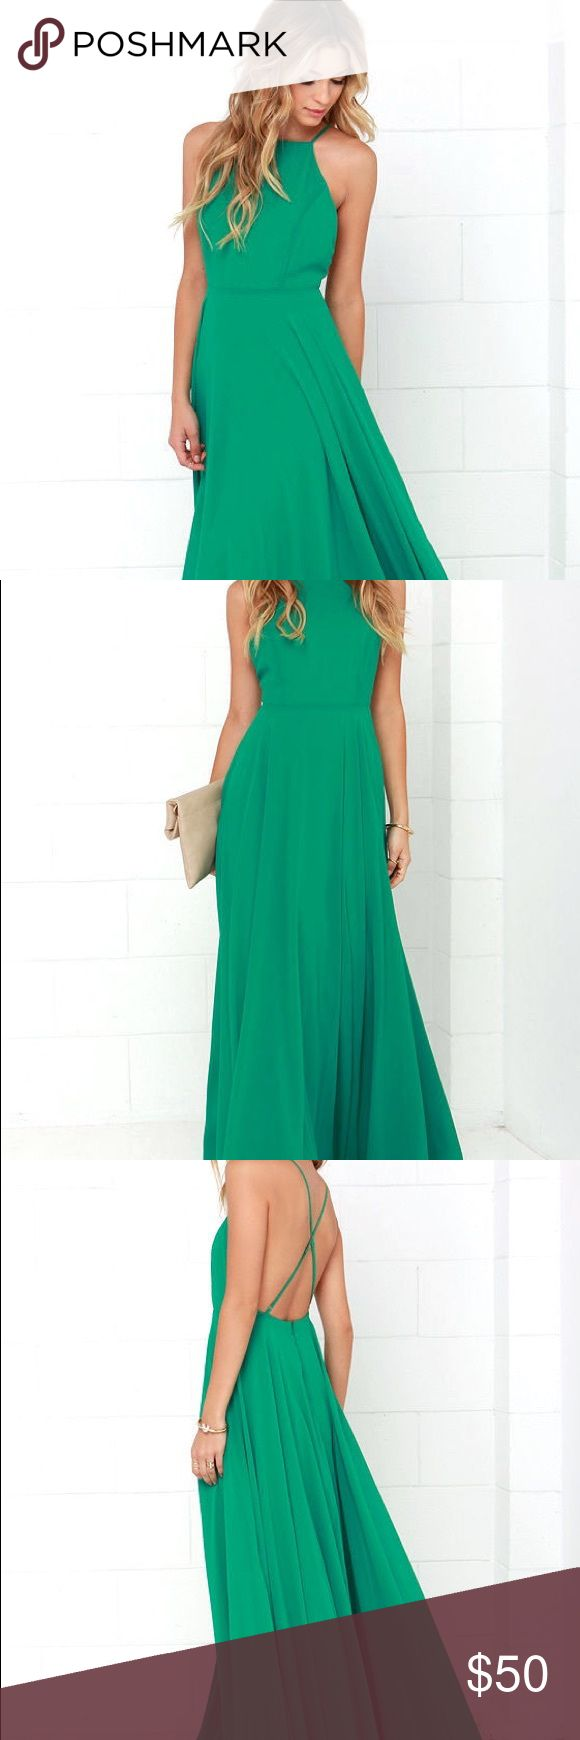 Green chiffon maxi dress Gorgeous green maxi dress in flowing chiffon. Cross back straps with low back. Can work with strapless bra pulled down in back. Mythical Kind of Love lulu's! Lulu's Dresses Maxi